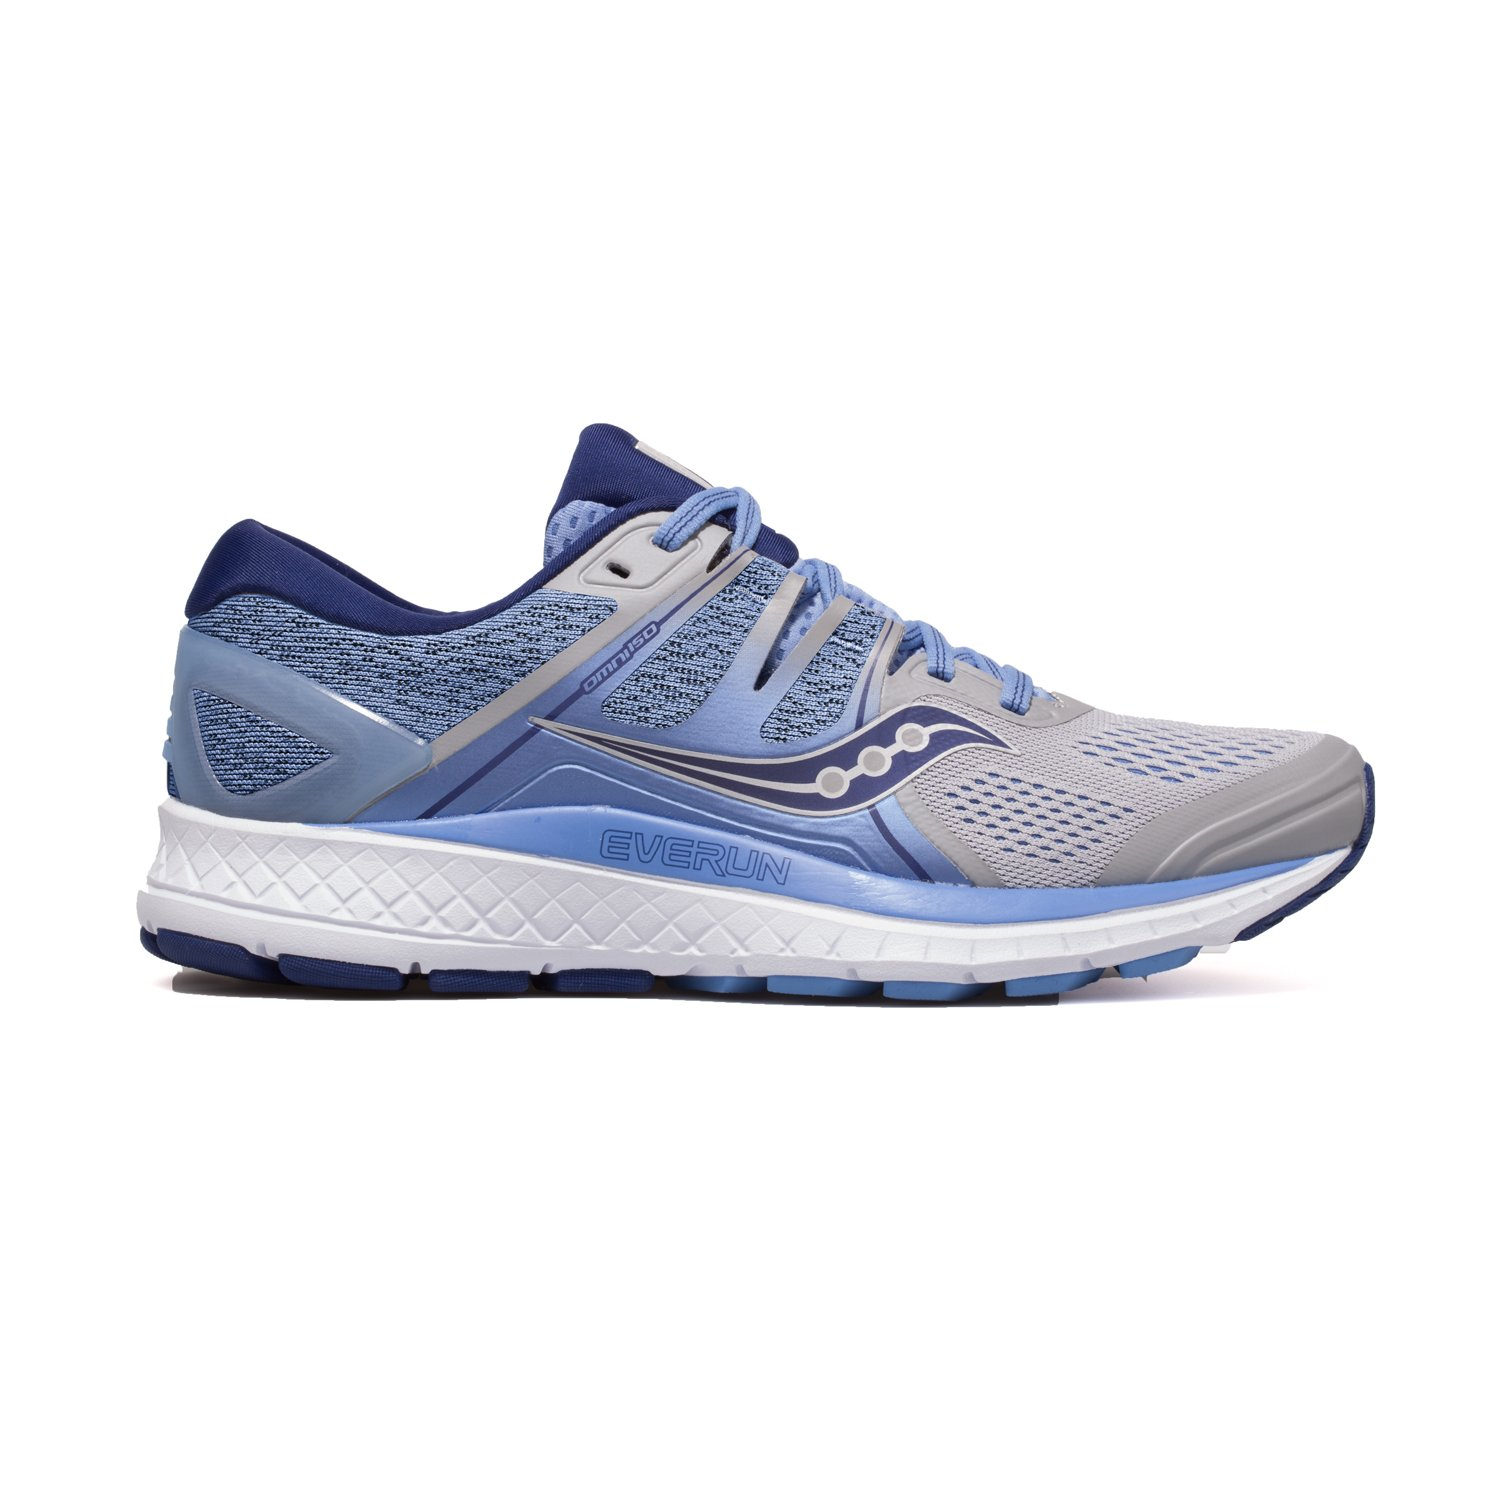 Saucony Women's Omni ISO Running Shoes B07D95KWKP 6.0 B(M) US|Silver/Blue/Navy